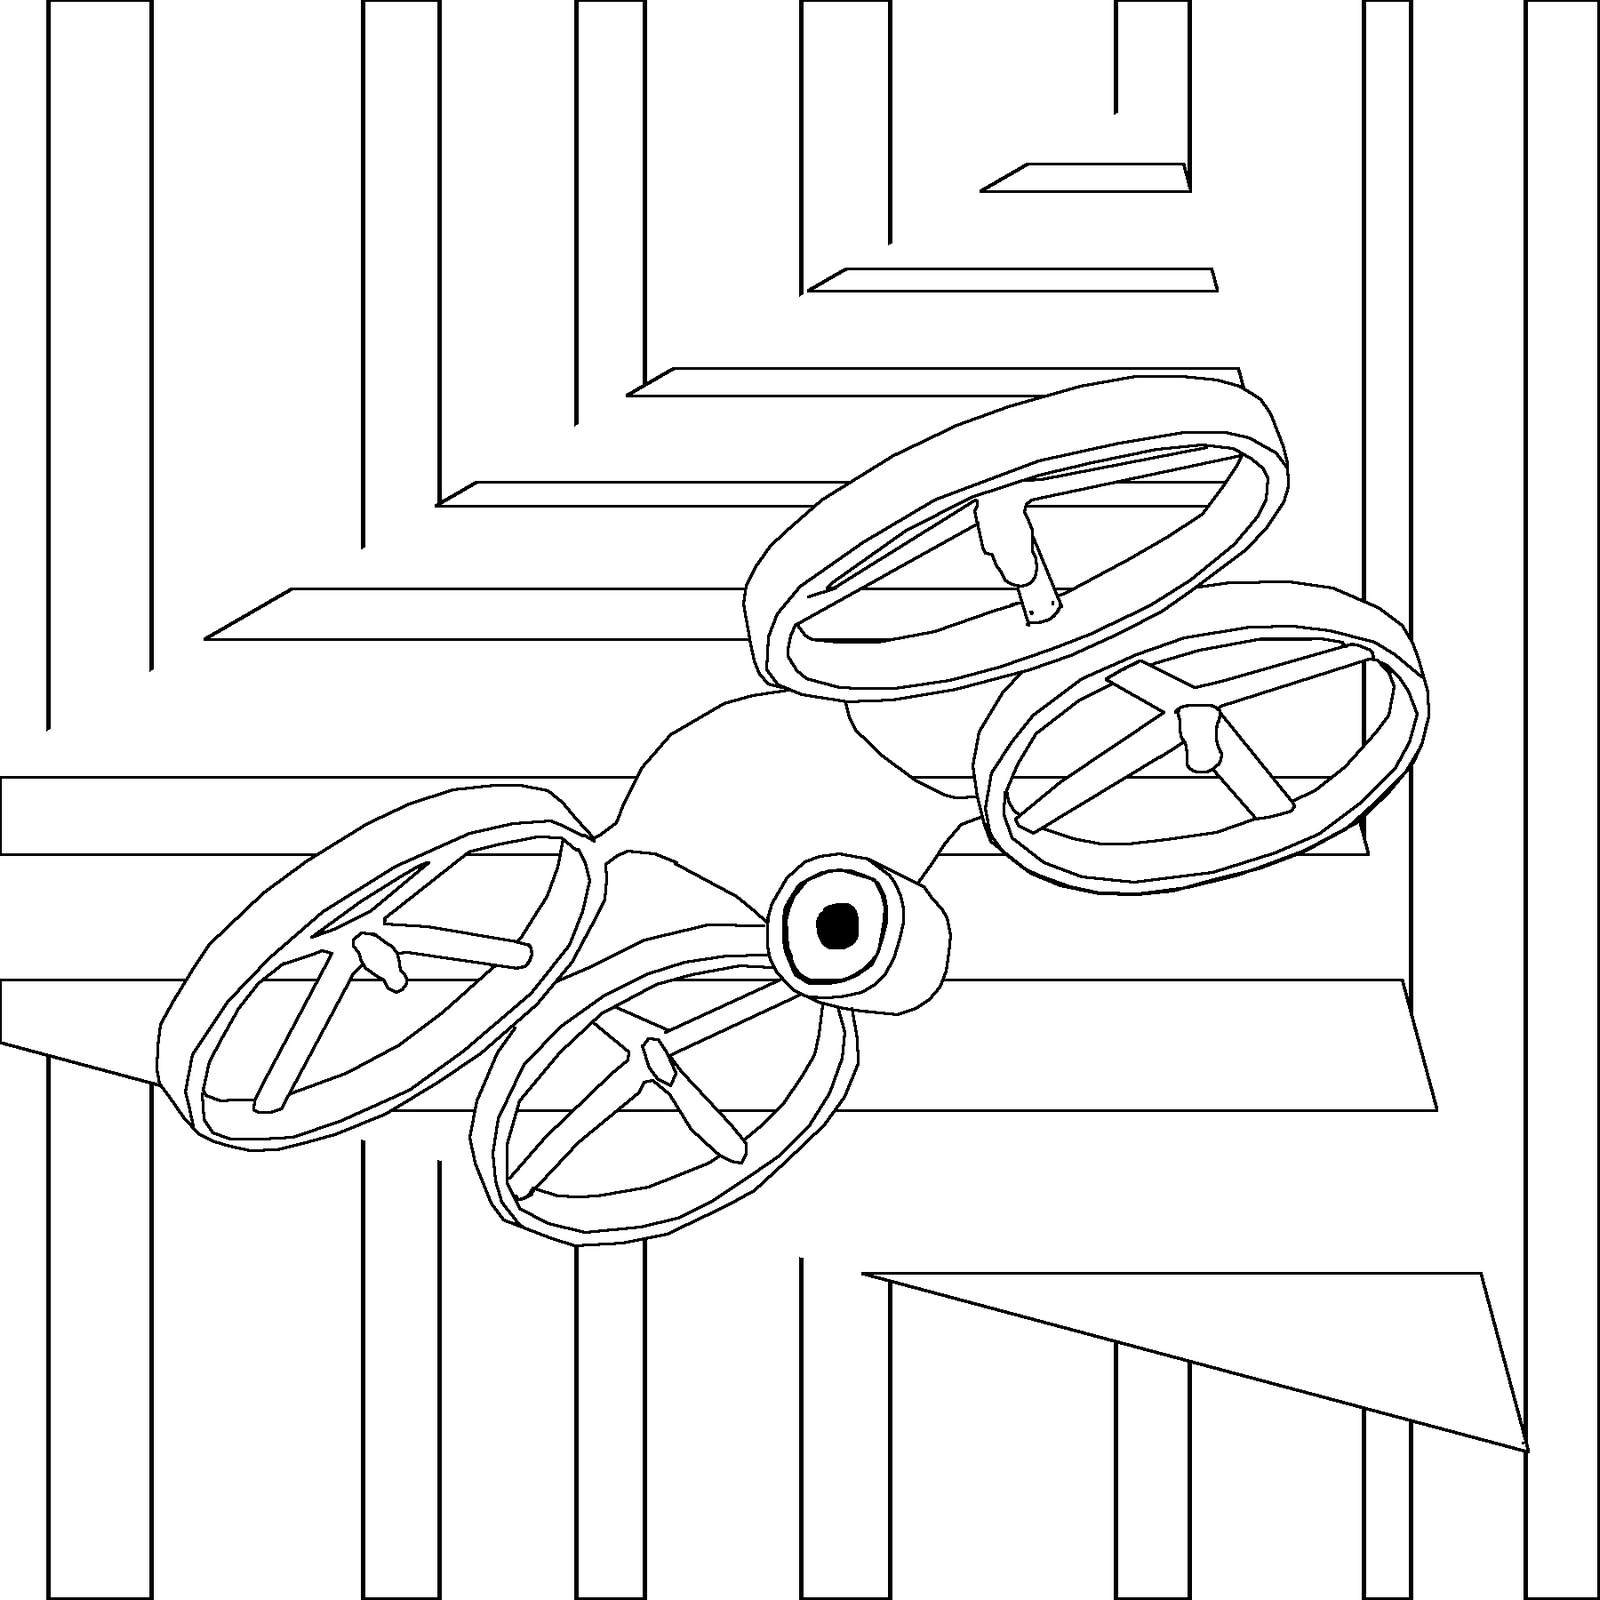 Drone Coloring Sheet Printable